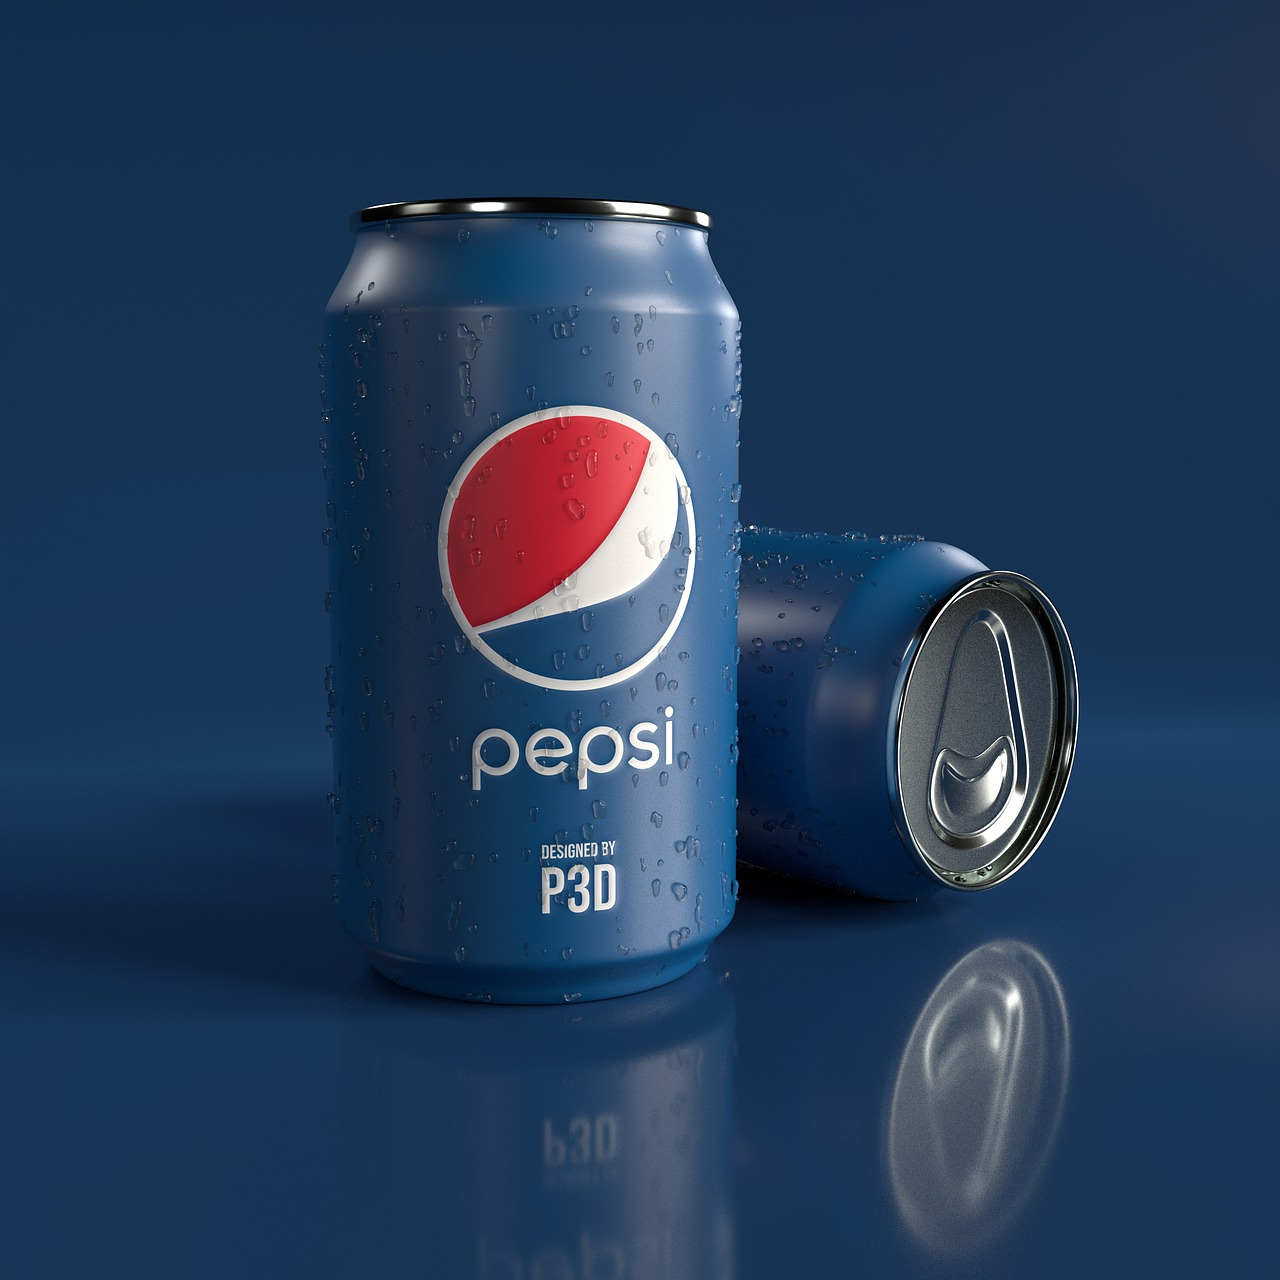 Pepsi cans with their traditional blue and white color scheme